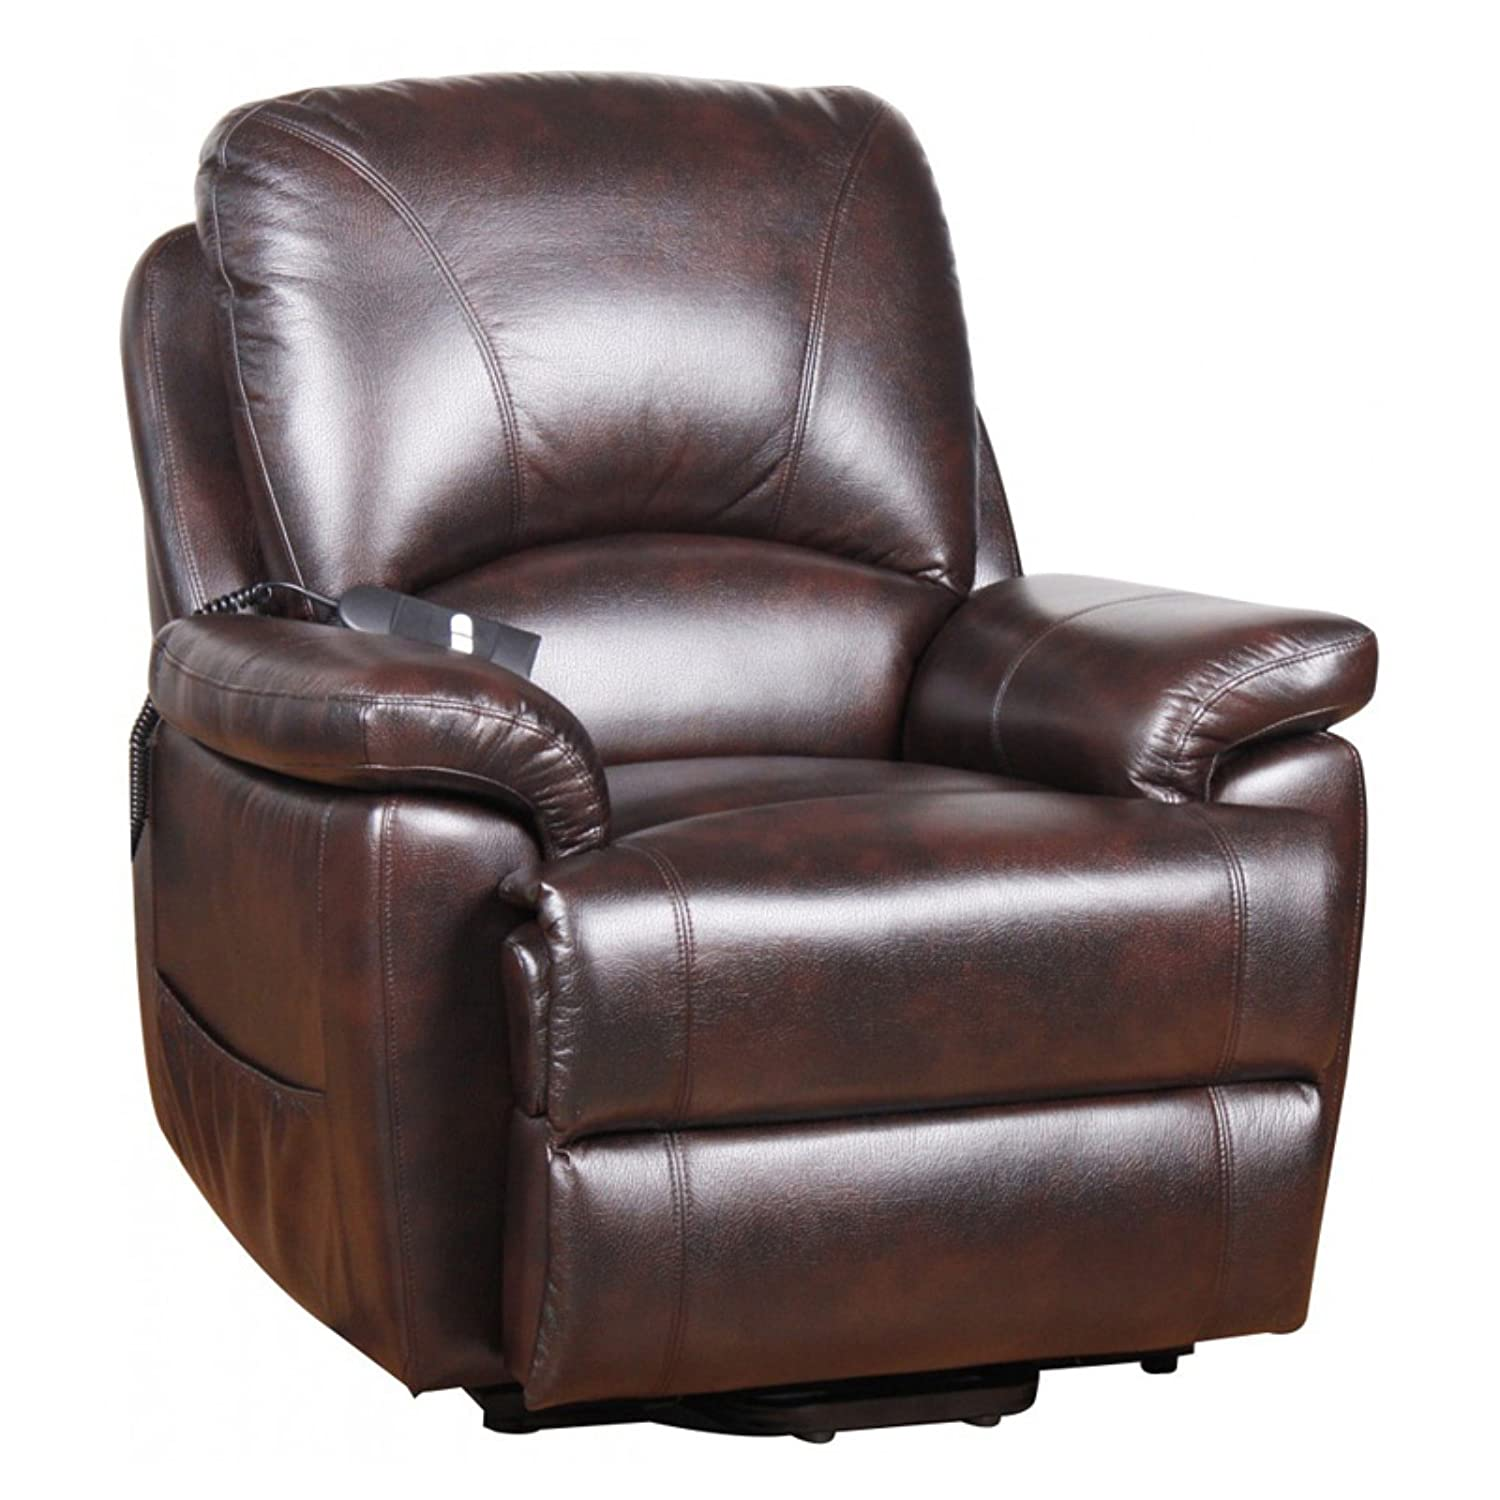 serta recliner lift reclining shipping free home today garden product sheffield comfort chair overstock